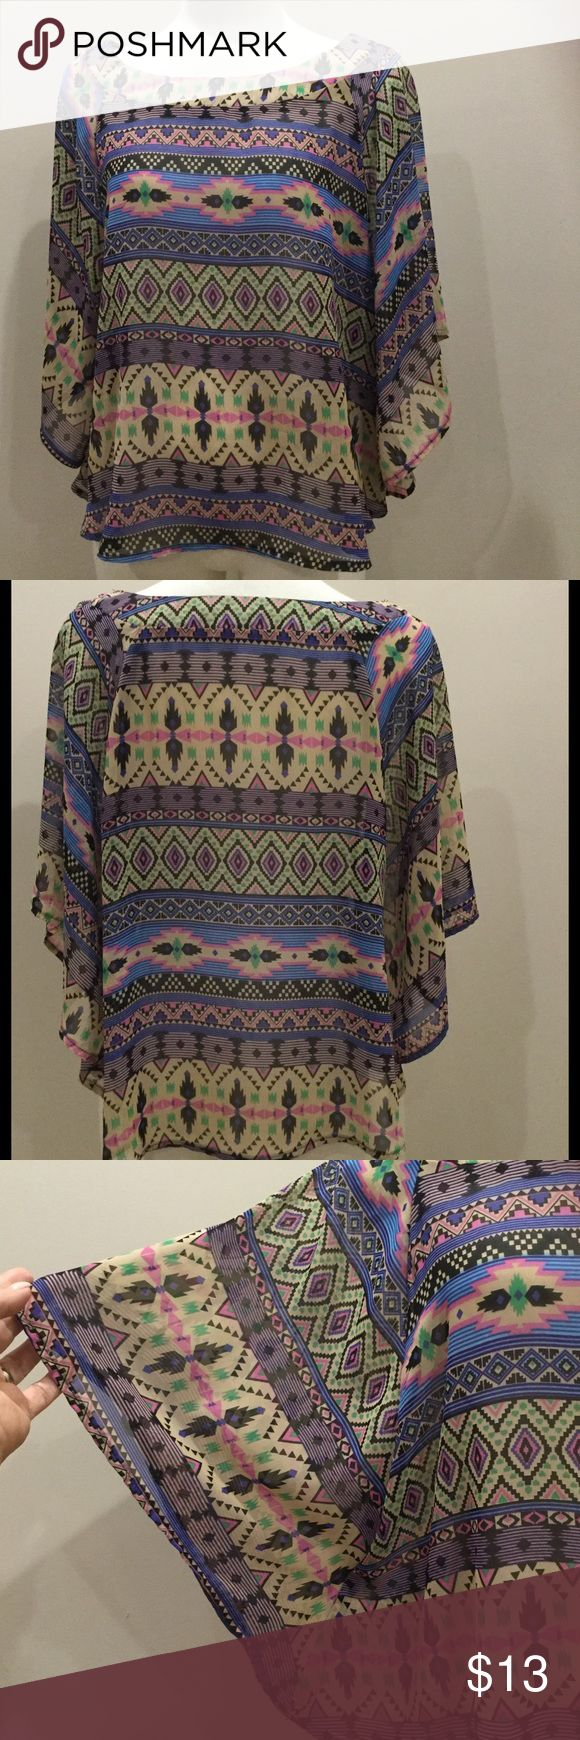 🌷 Charlotte Russe Aztec Print batwing top Charlotte Russe sheer Aztec Print batwing top. Light and flowey Size XL. This item is a REPOSH. code T3 Charlotte Russe Tops Blouses